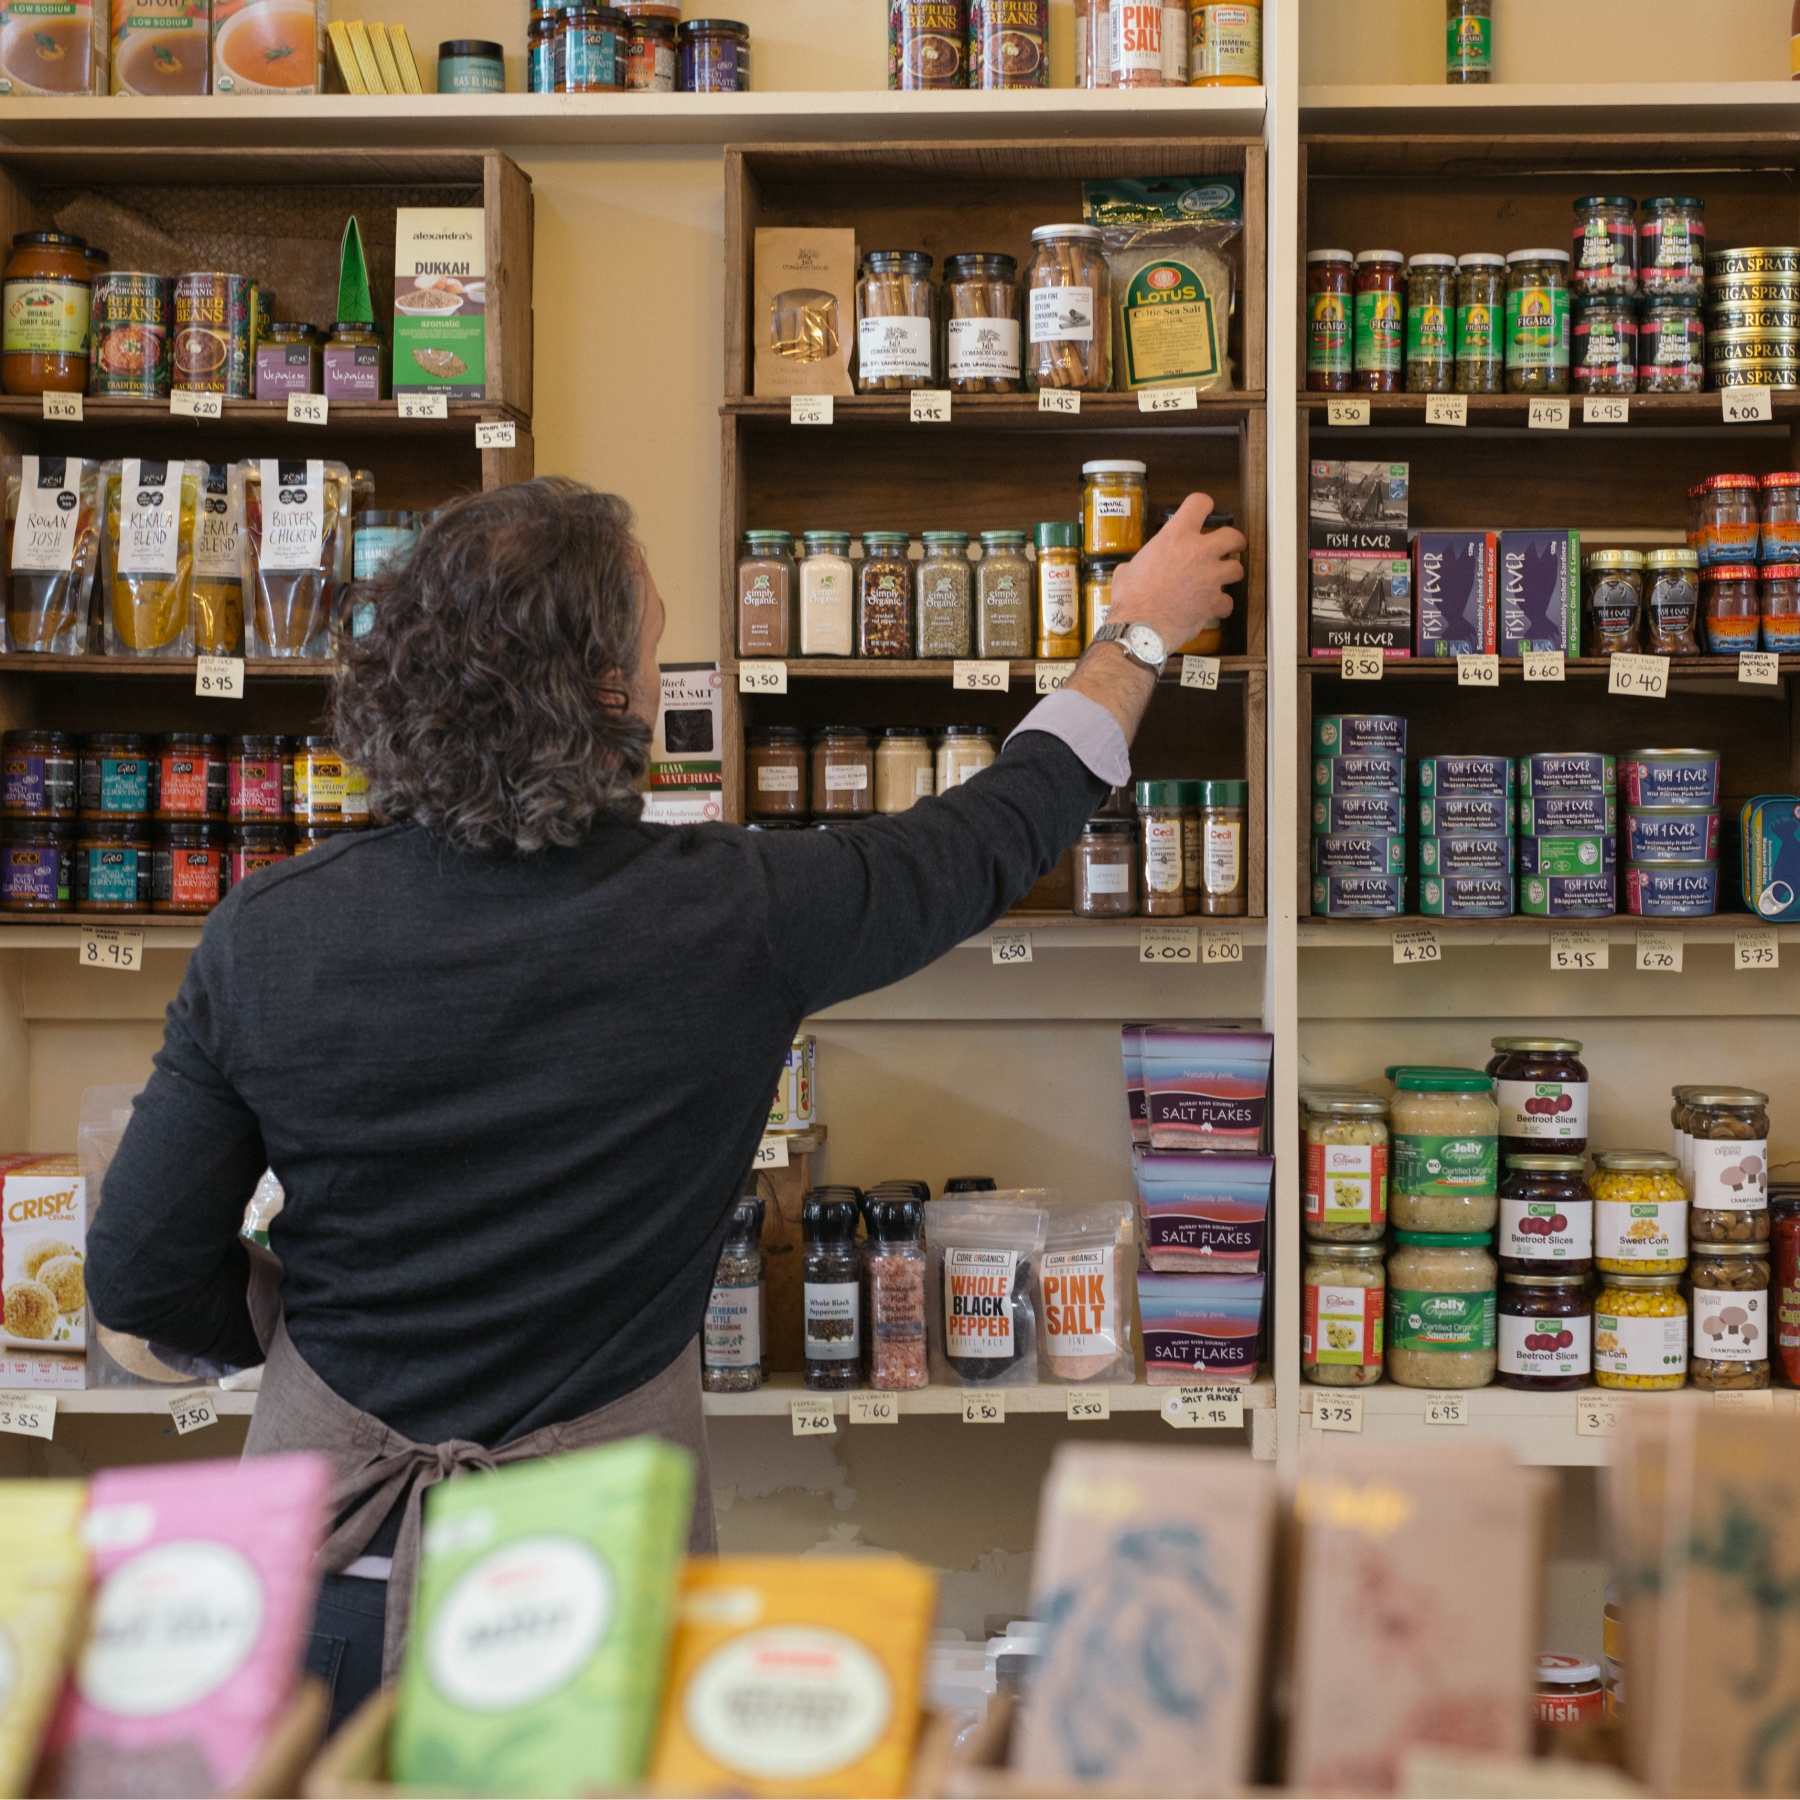 The Common Good Store is a boutique grocer in Hawthorn, Victoria